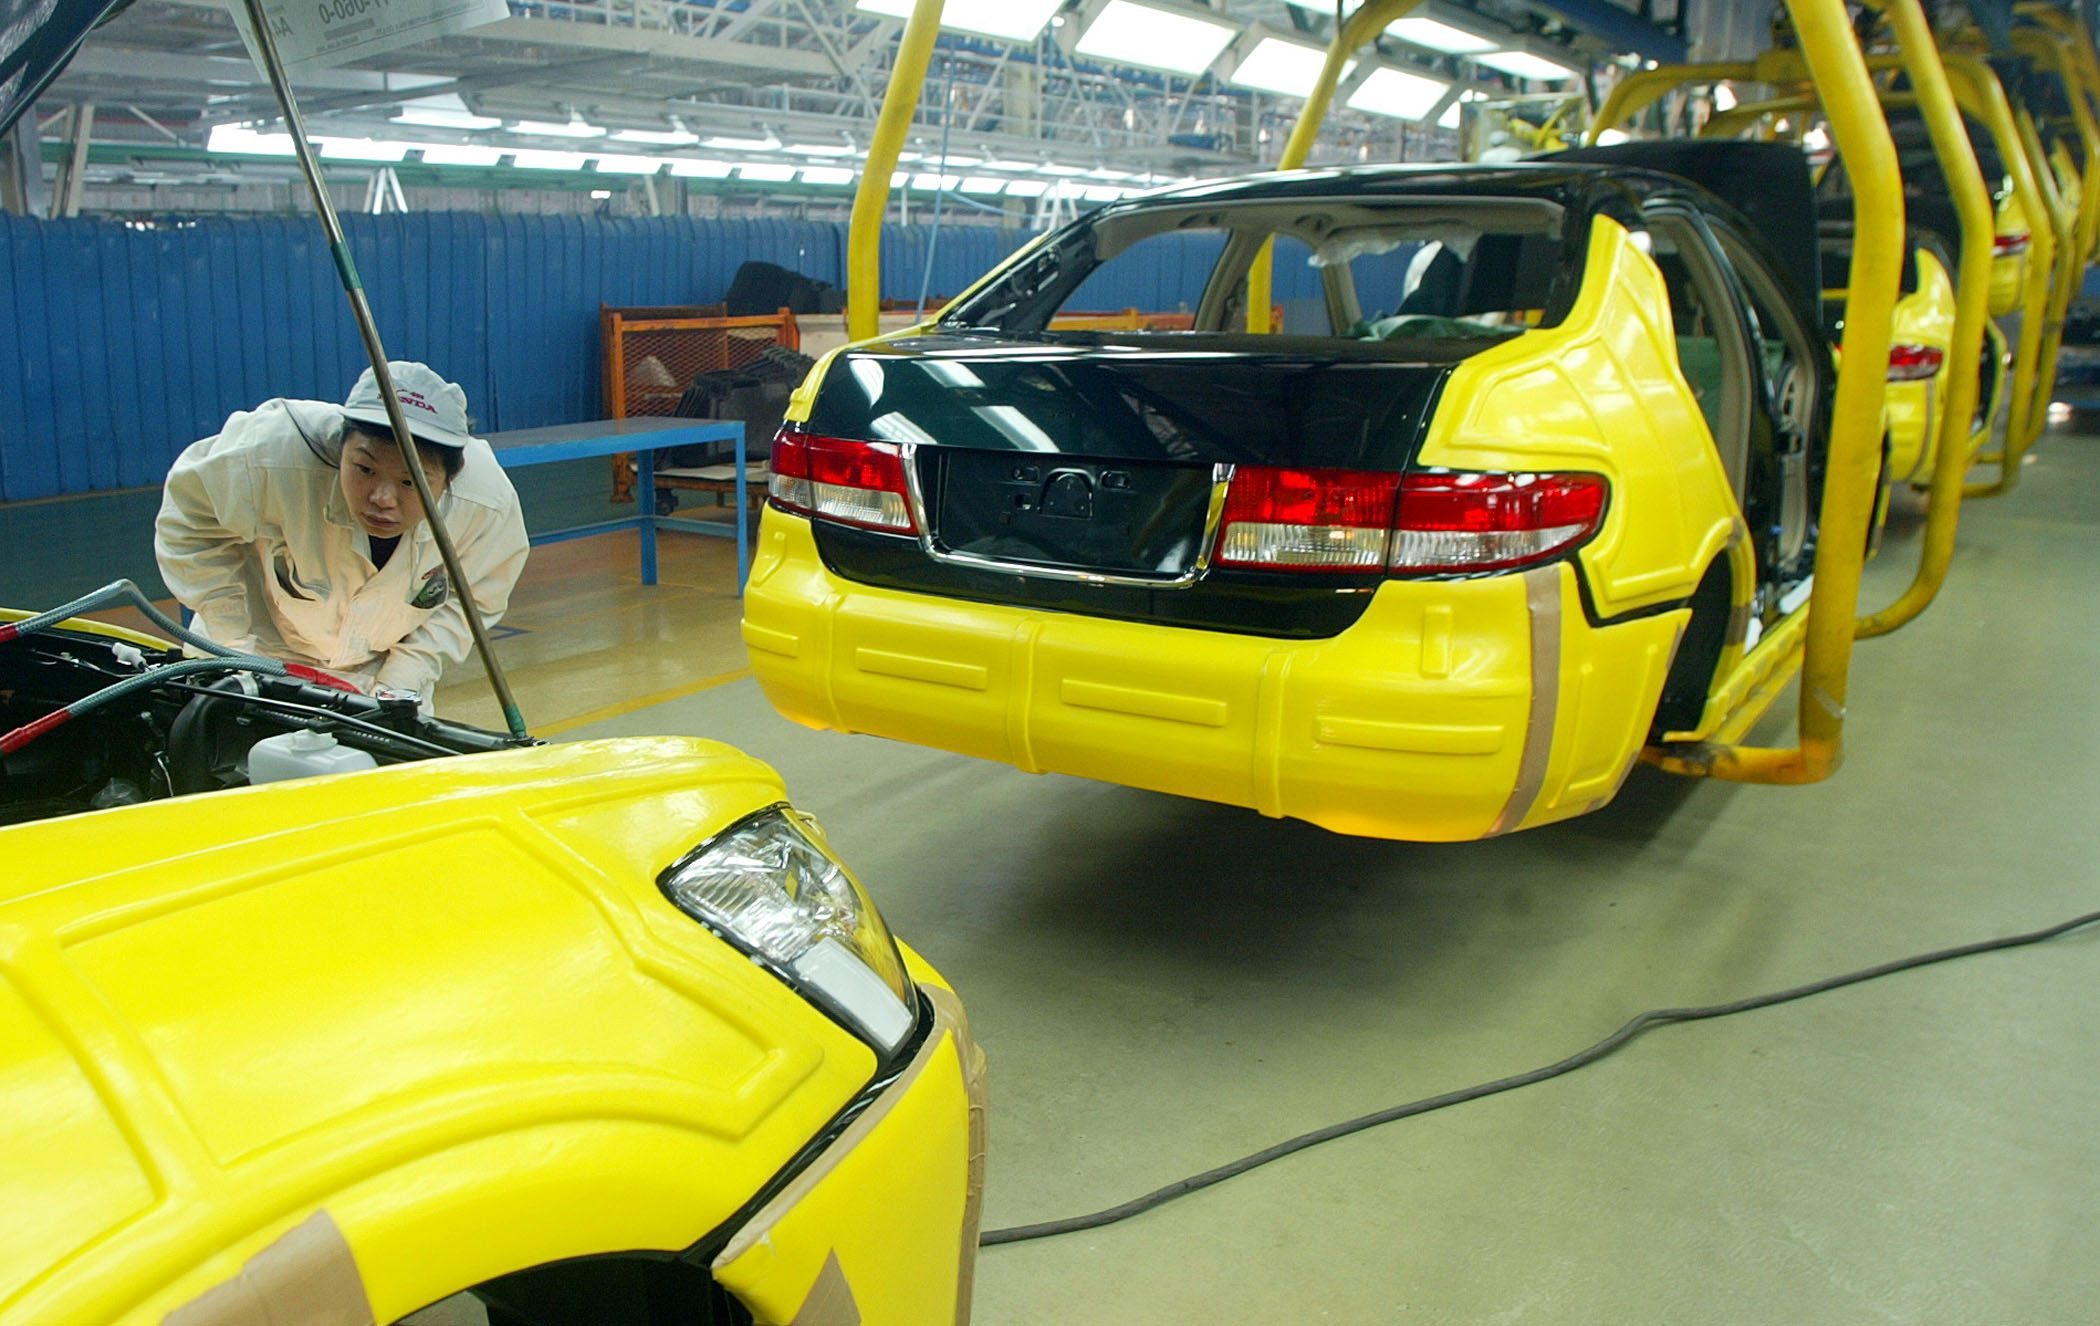 A worker inspects a Honda Accord car model at the Honda assembly plant in the southern Chinese city of Guangzhou, on January 17, 2003